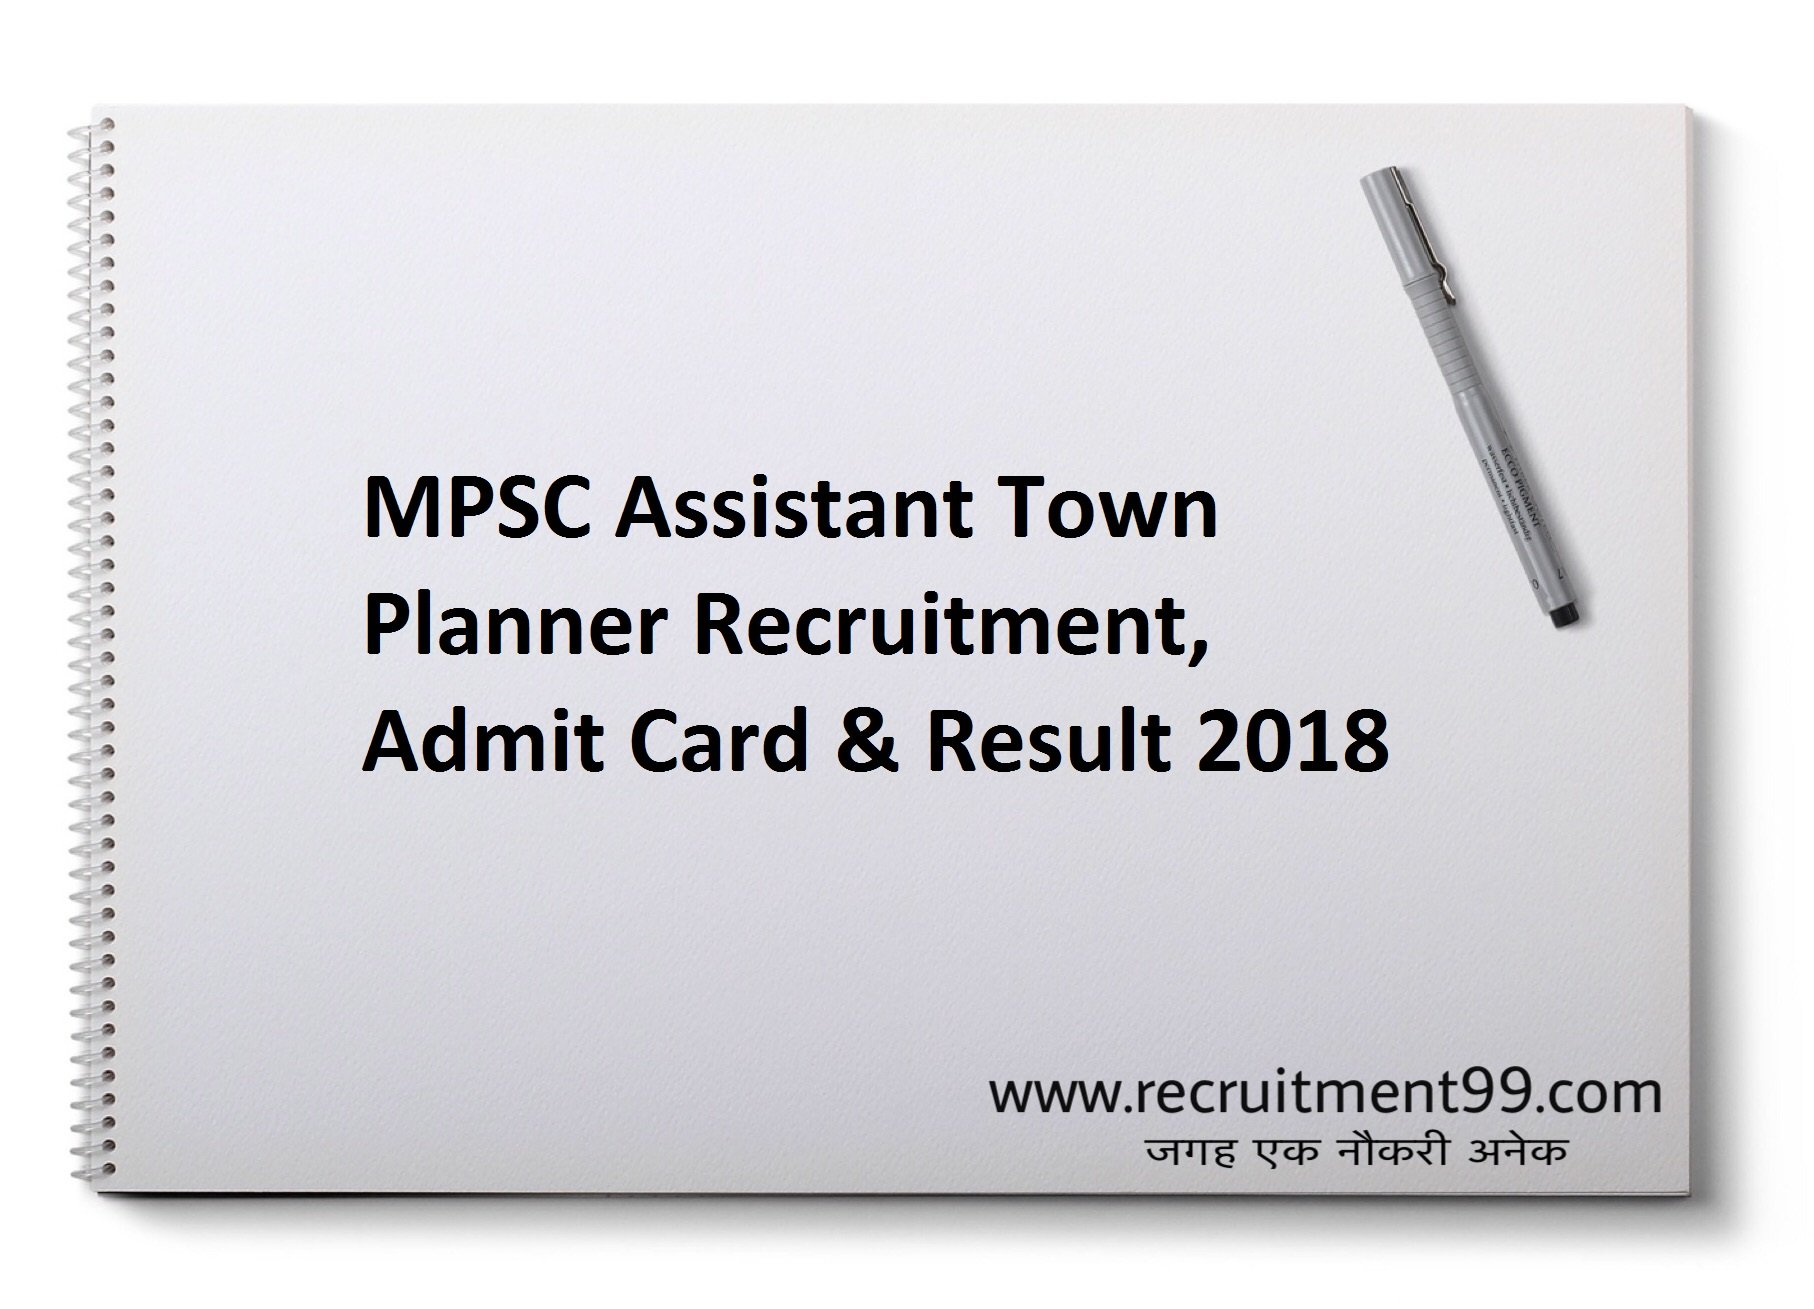 MPSC Assistant Town Planner Recruitment Admit Card Result 2018